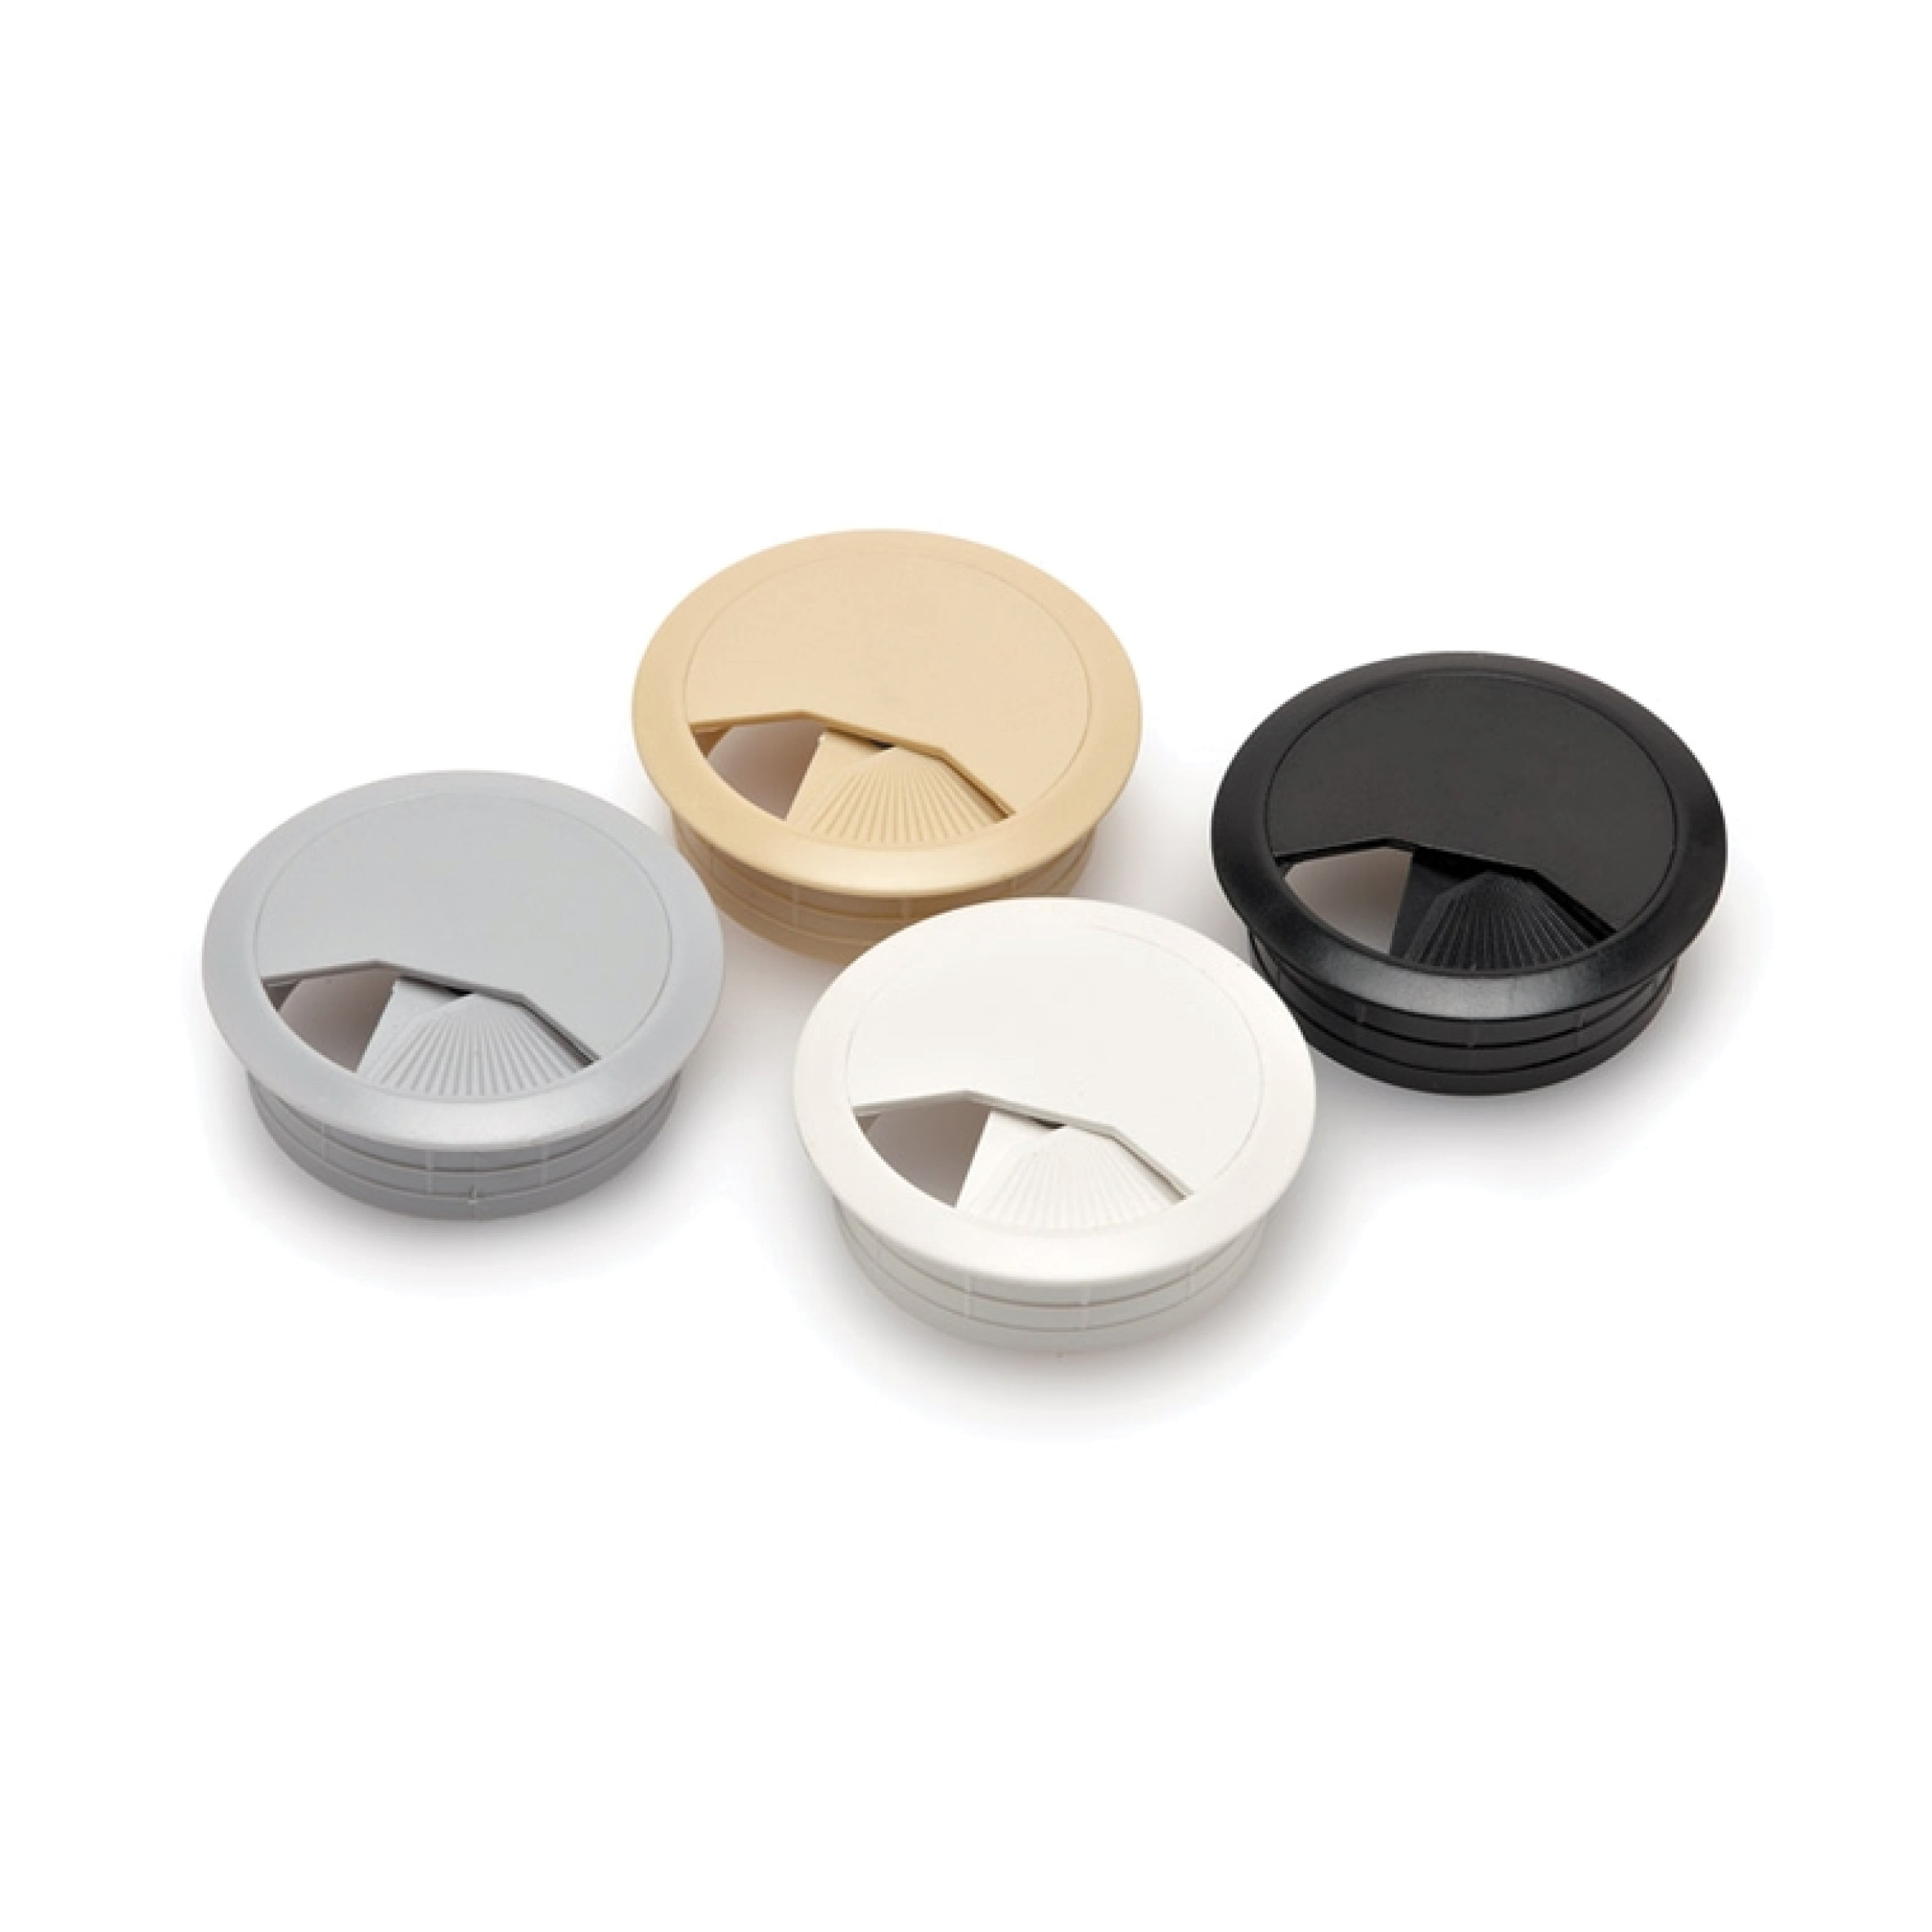 CABINETRY CONSUMABLES